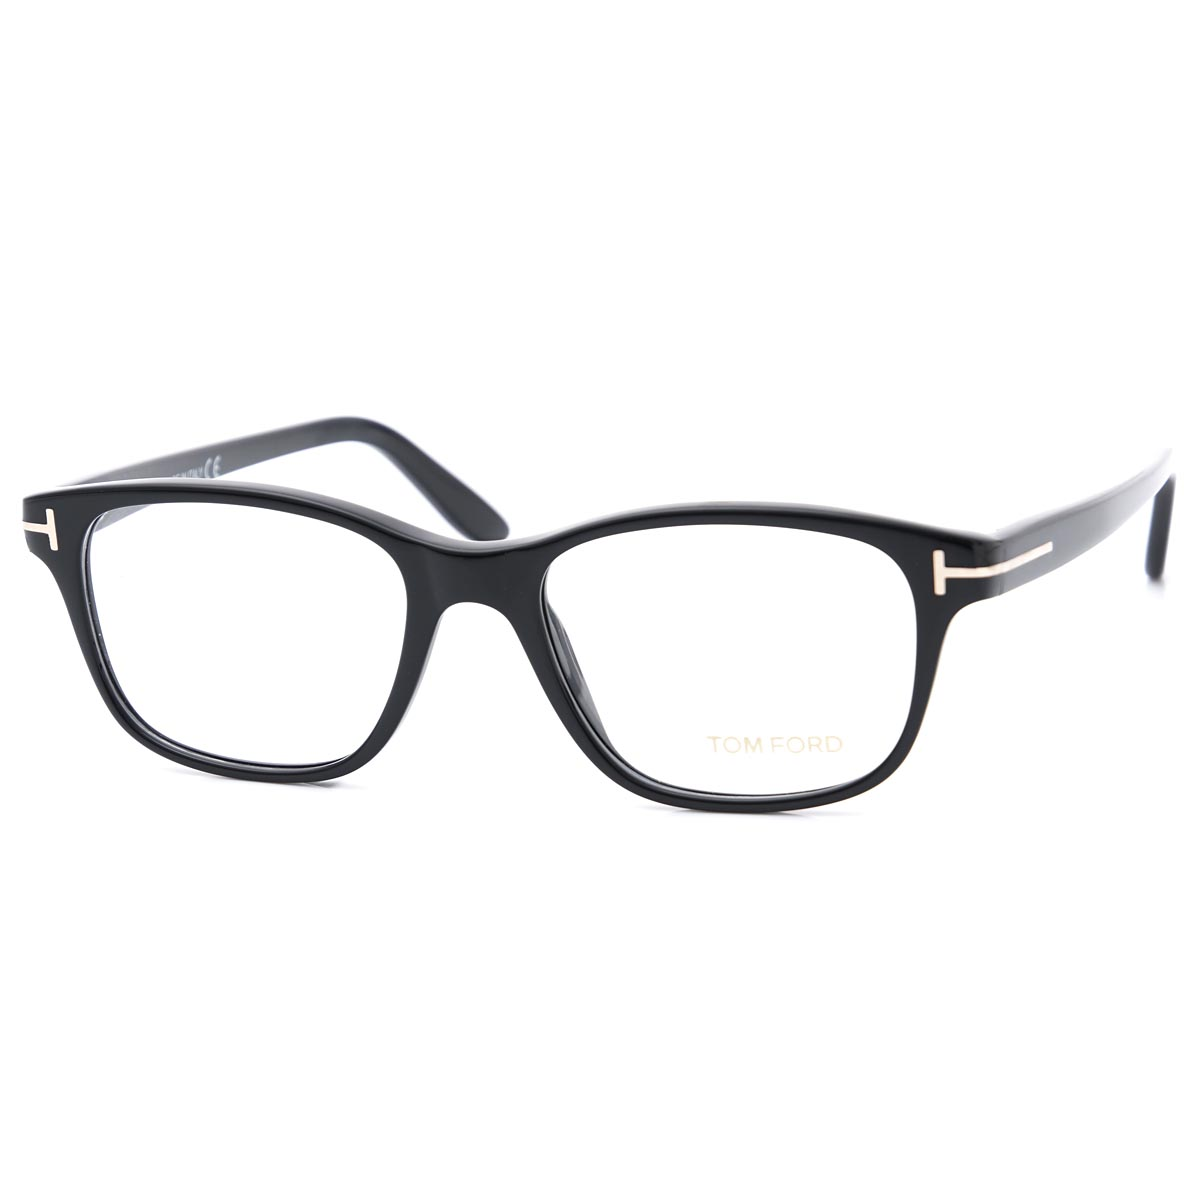 0b35e2a1068 Tom Ford TOM FORD glasses glasses frame square black black system ft5196 001  men s   Lady s